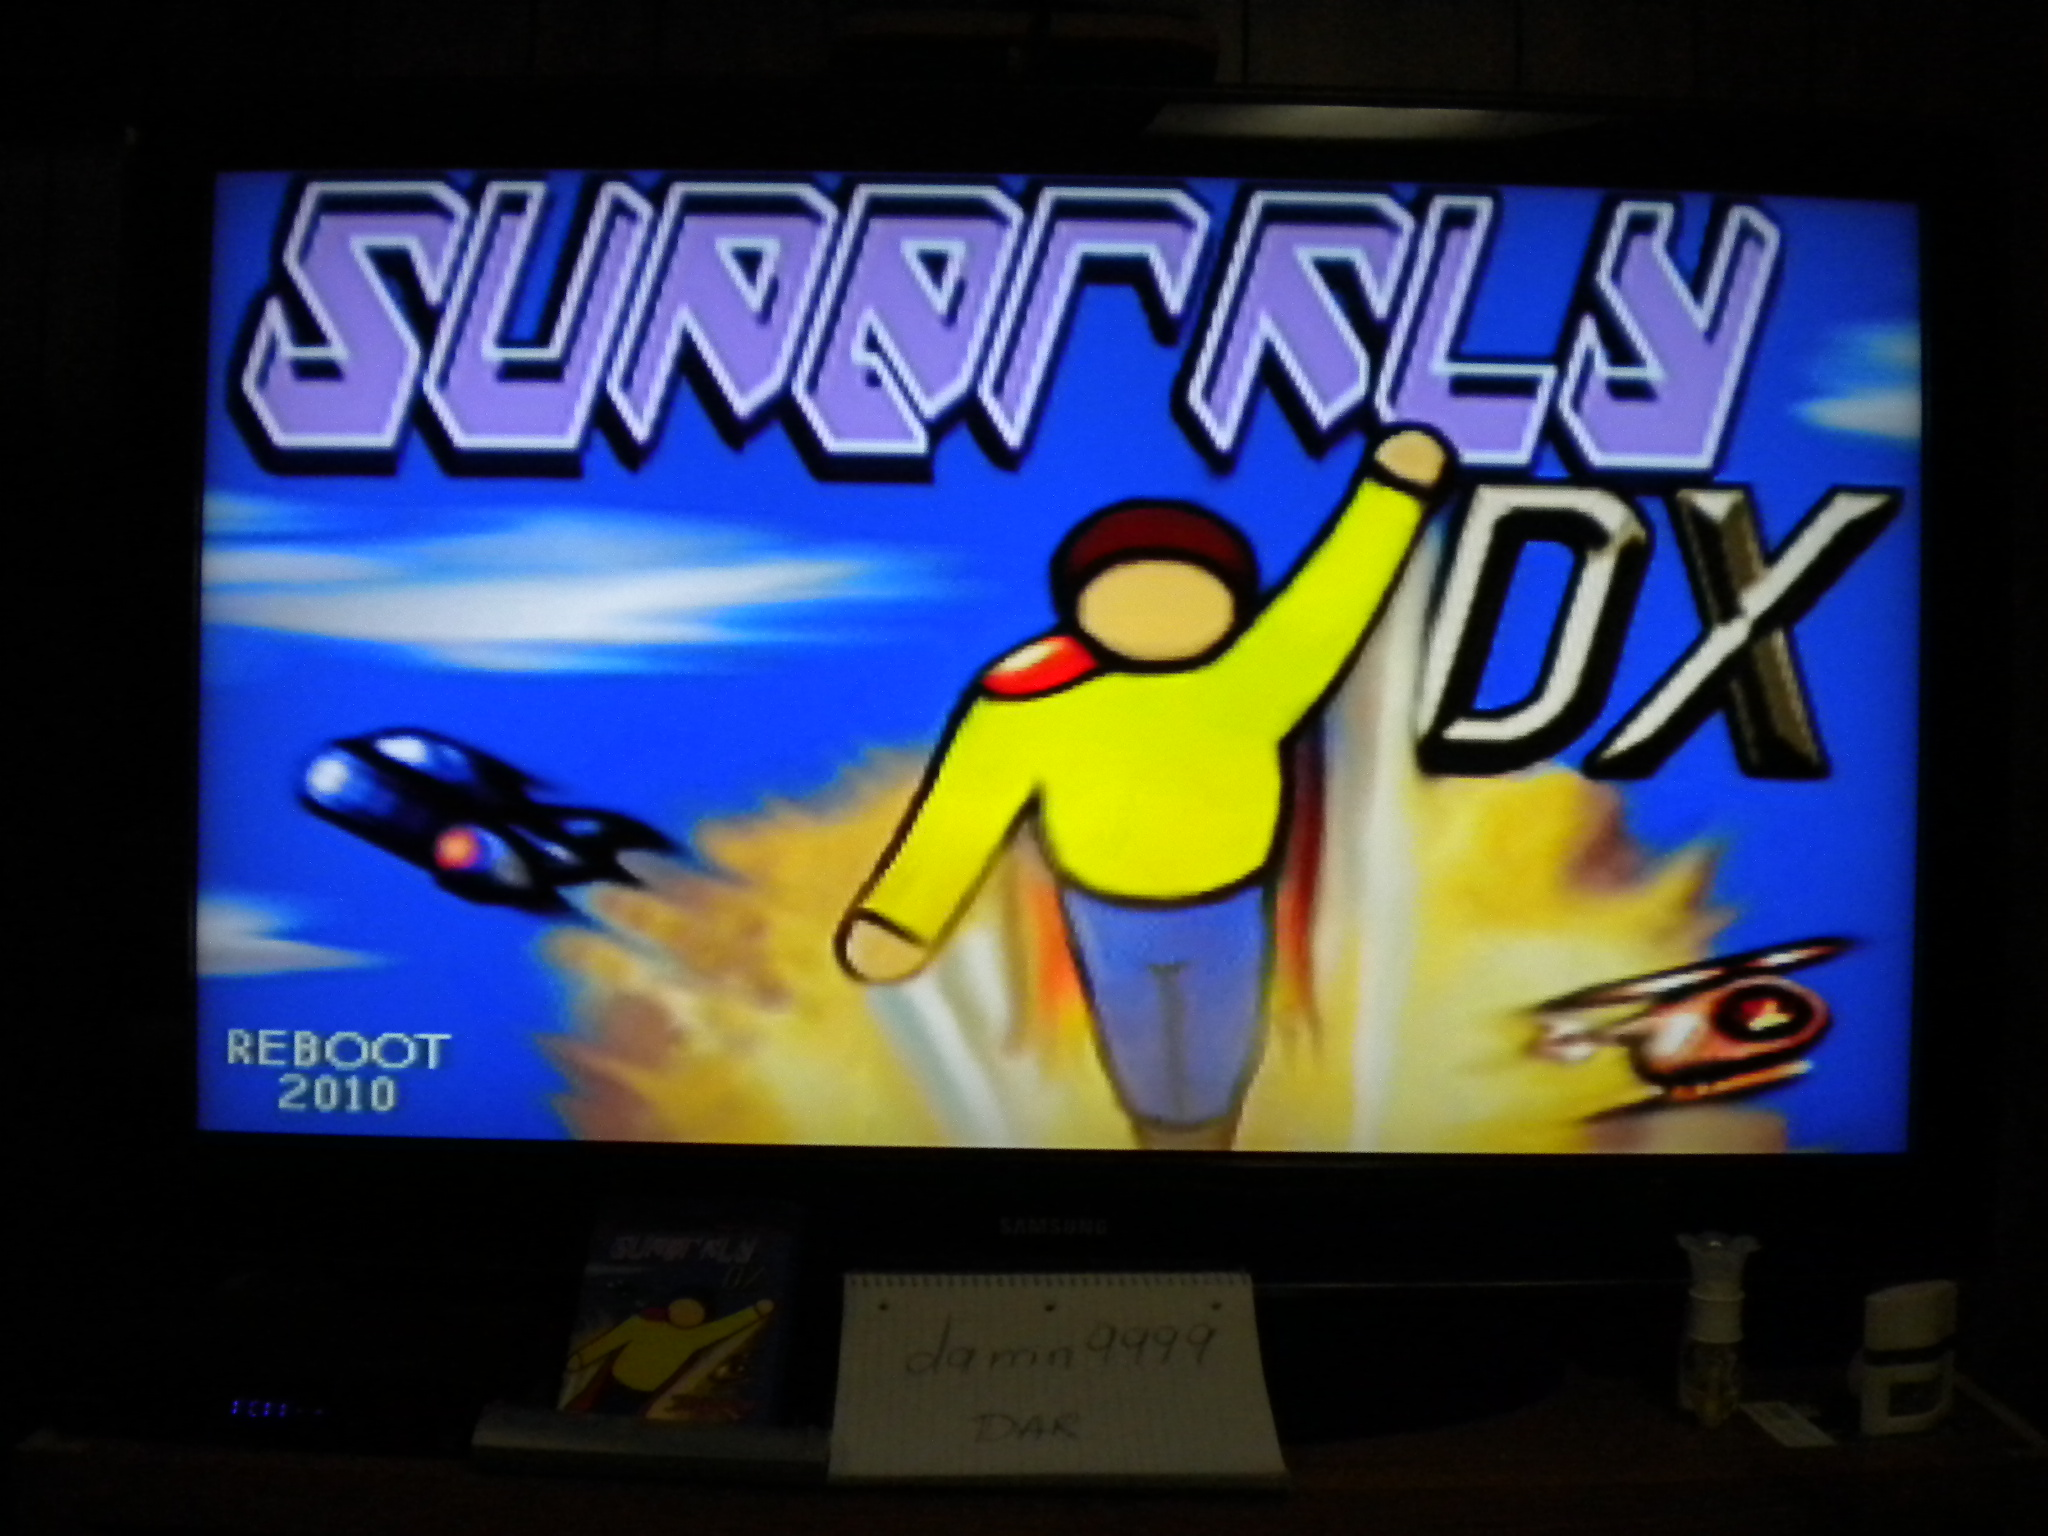 SuperFly DX 1,385 points